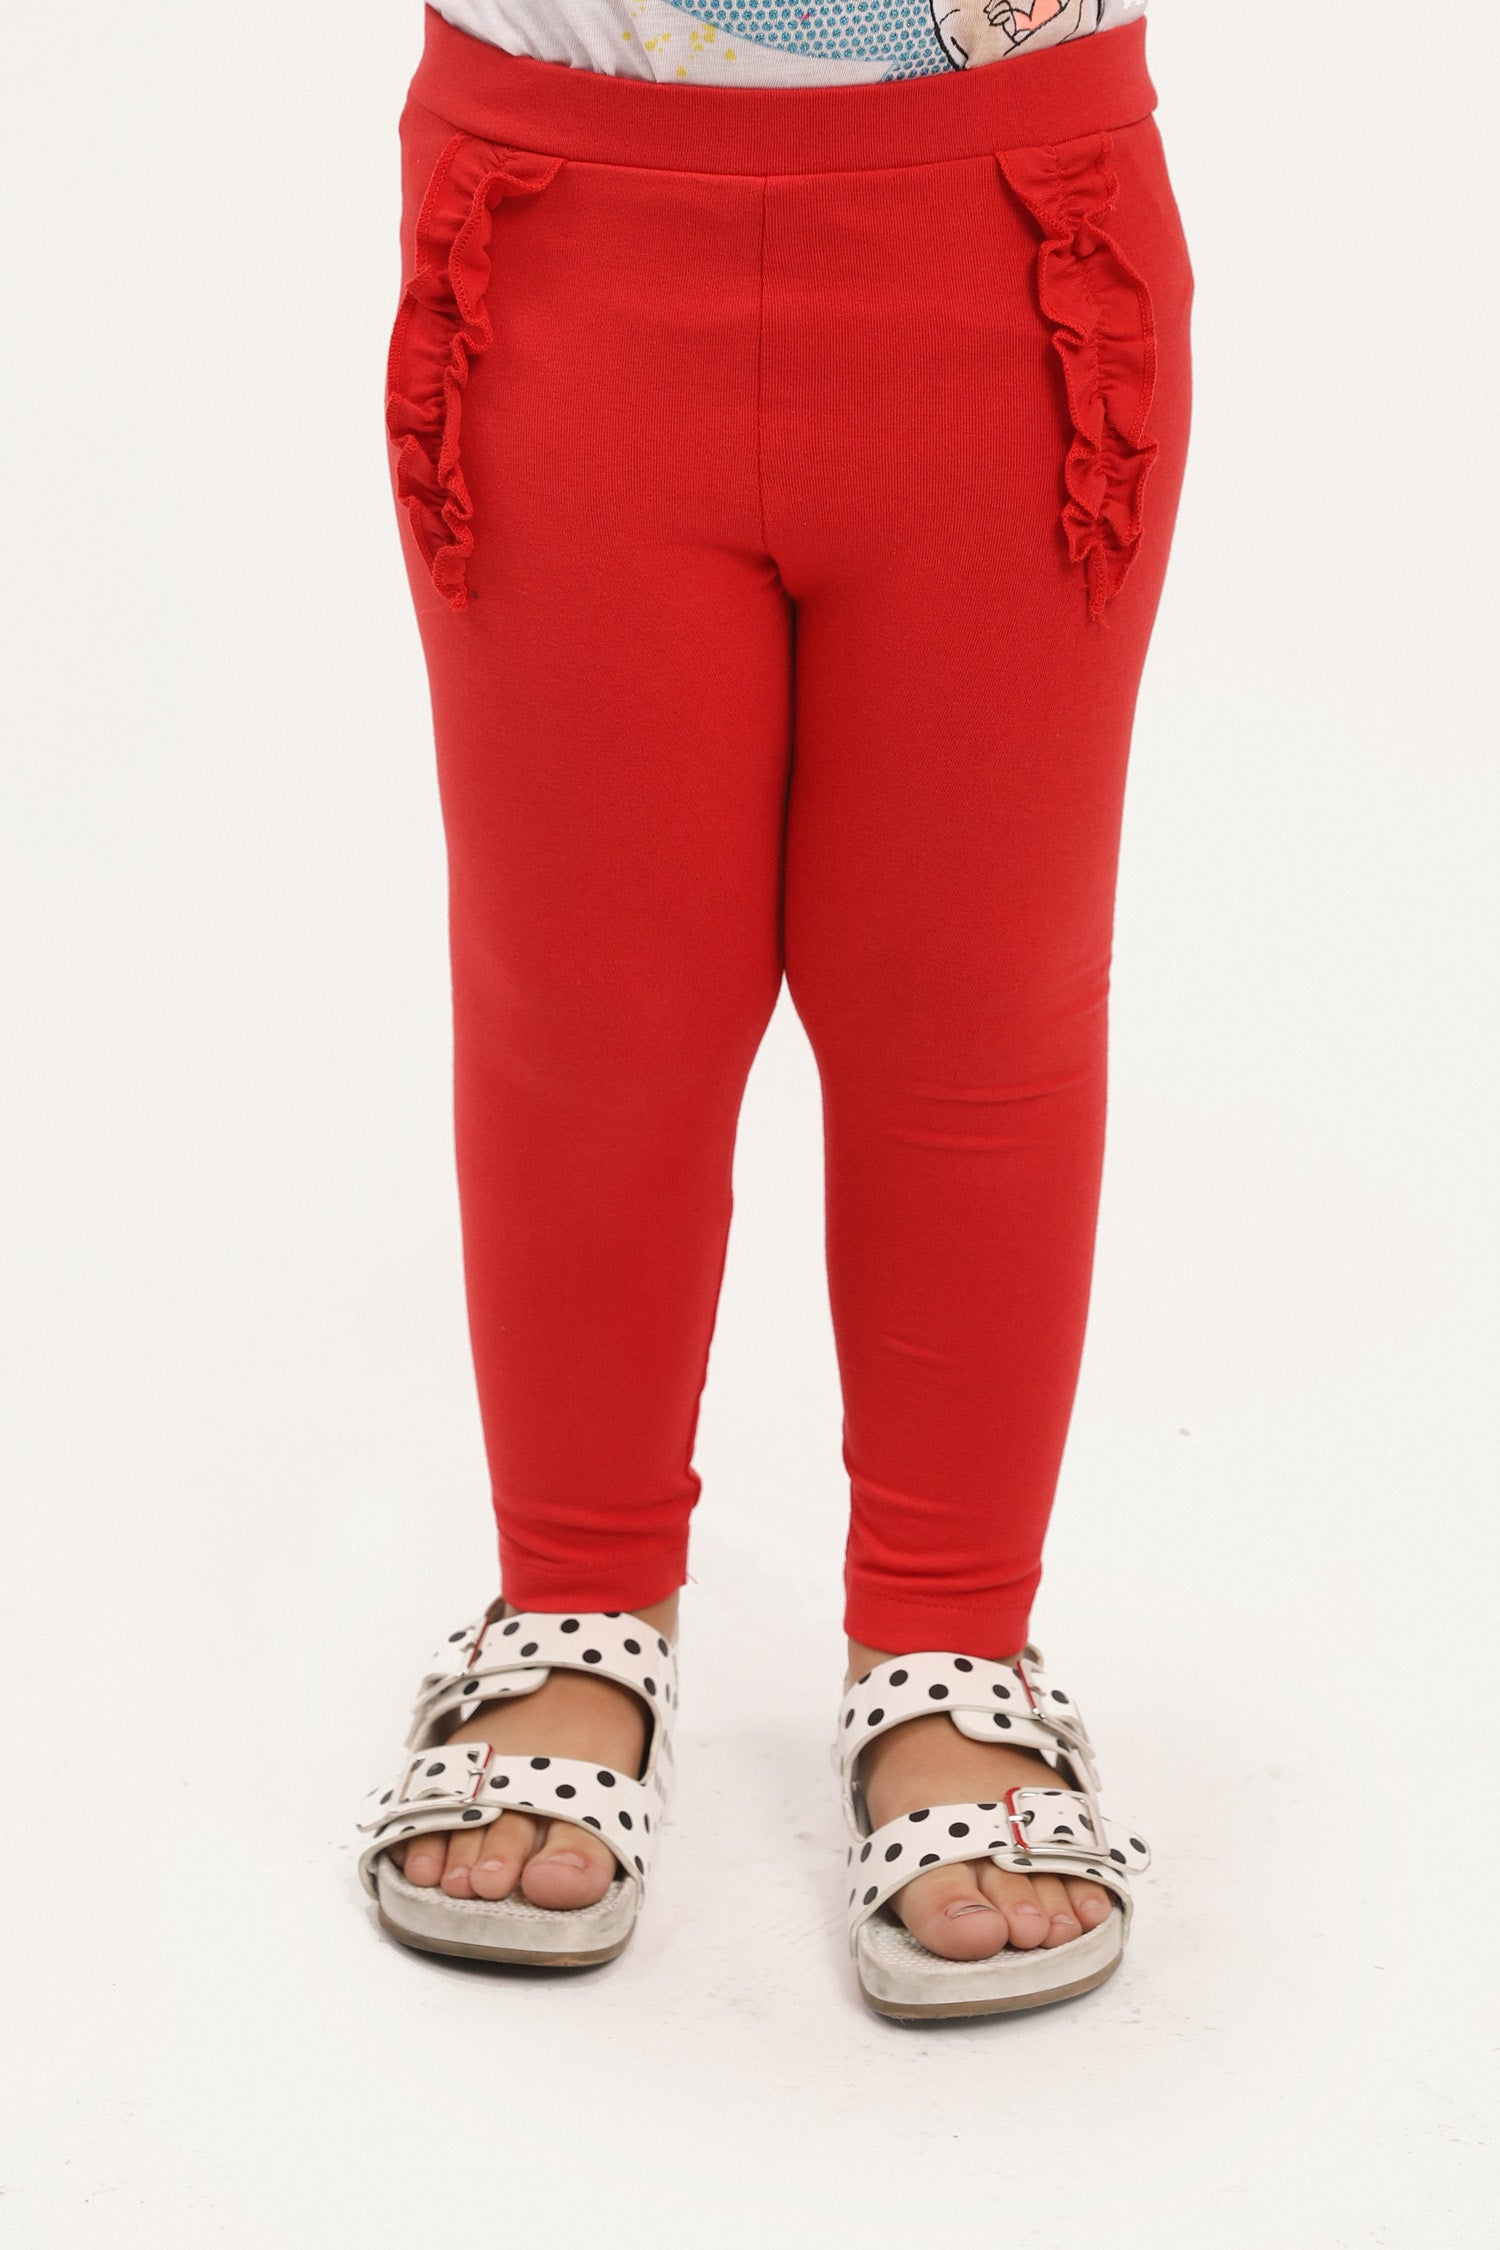 Ruffle Detailed Pants